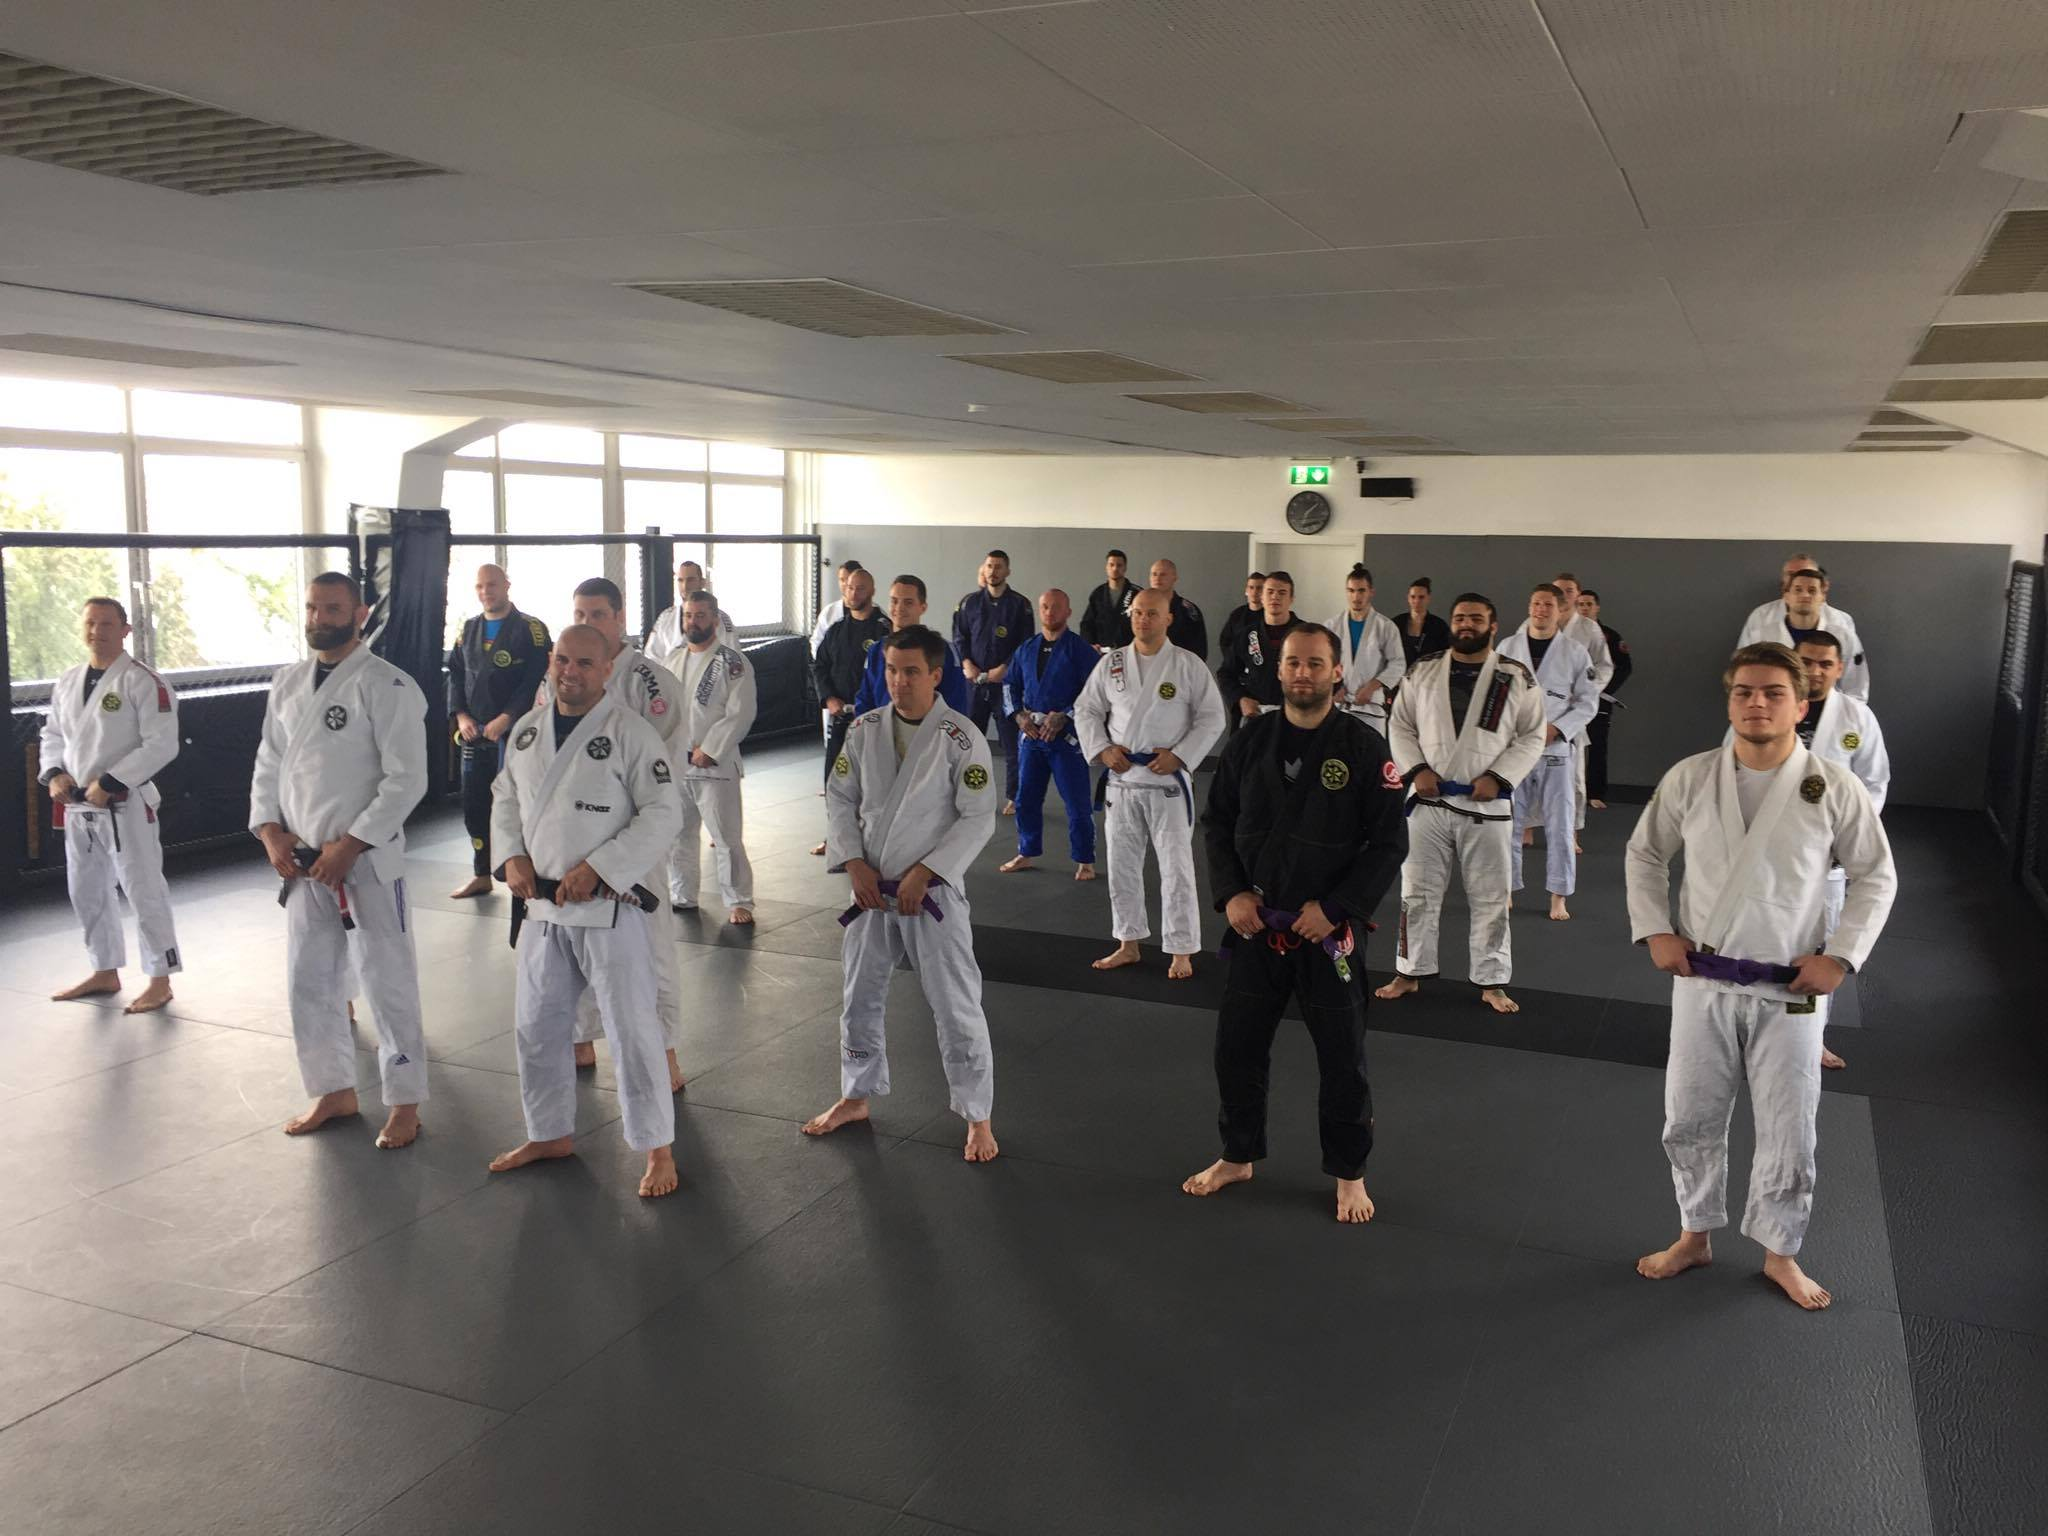 eduardo rocha gibt seminar in fellbach kong 39 s gym kampfsport schule stuttgart bjj mma. Black Bedroom Furniture Sets. Home Design Ideas